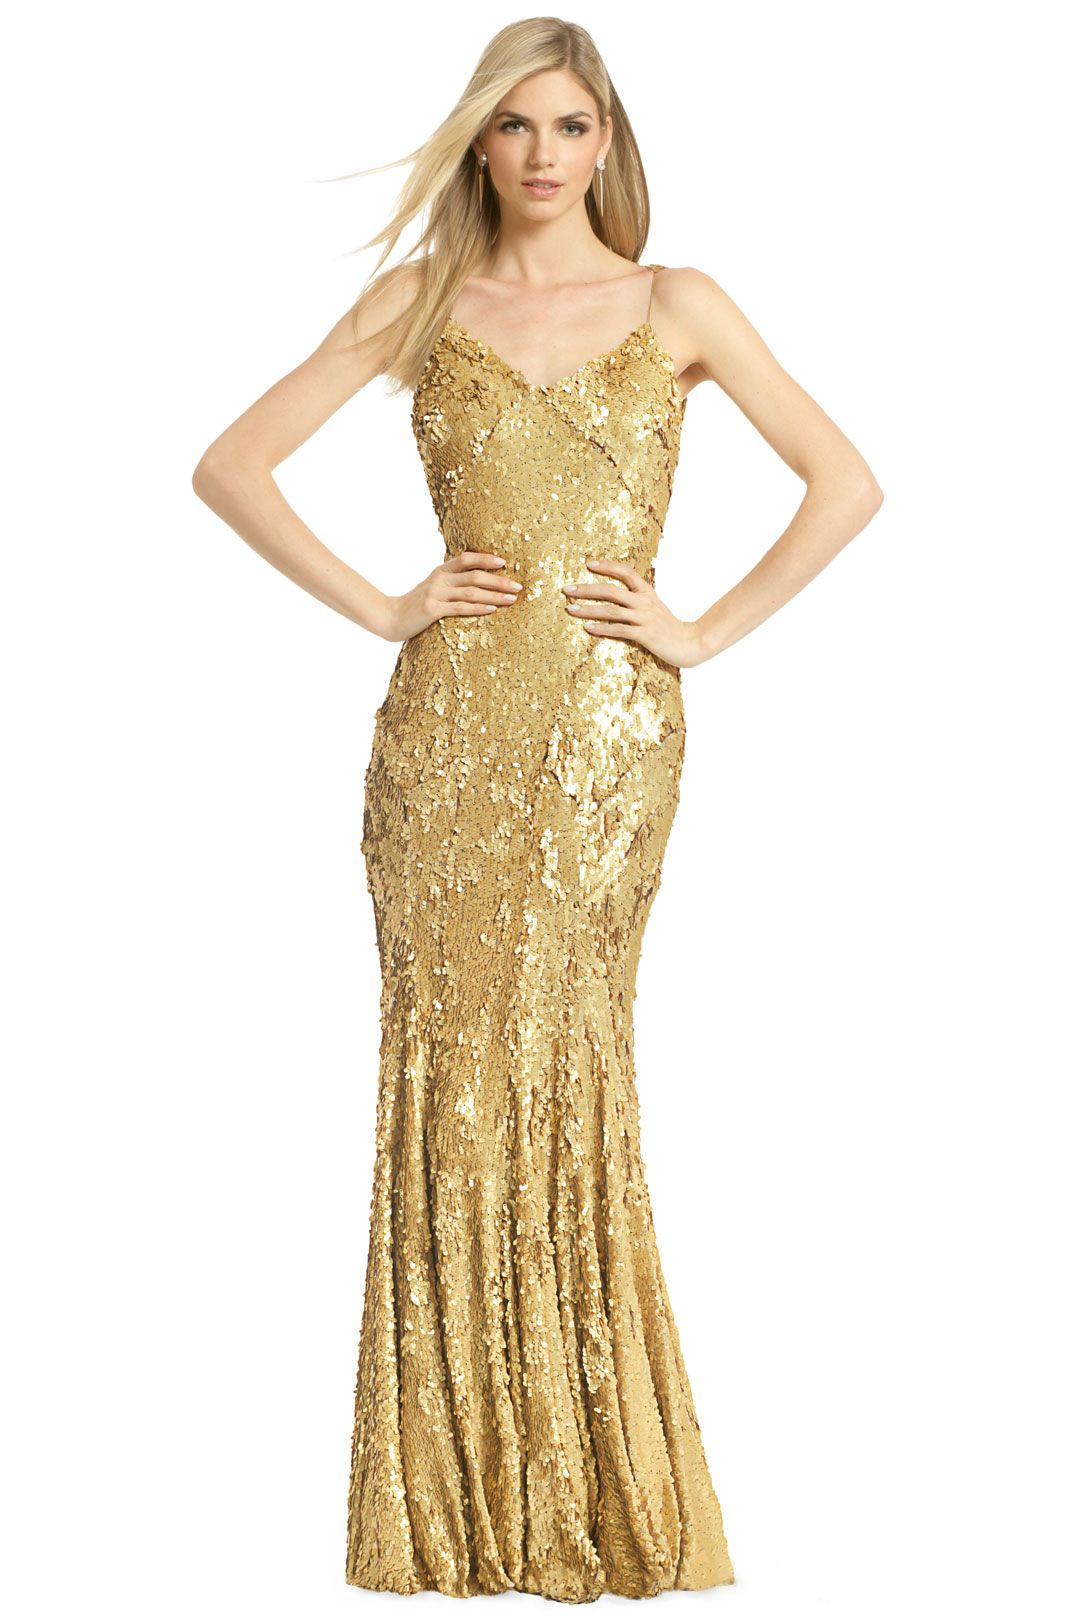 As Good as Gold Gown | Ohio, Carnivals and Rent the runway